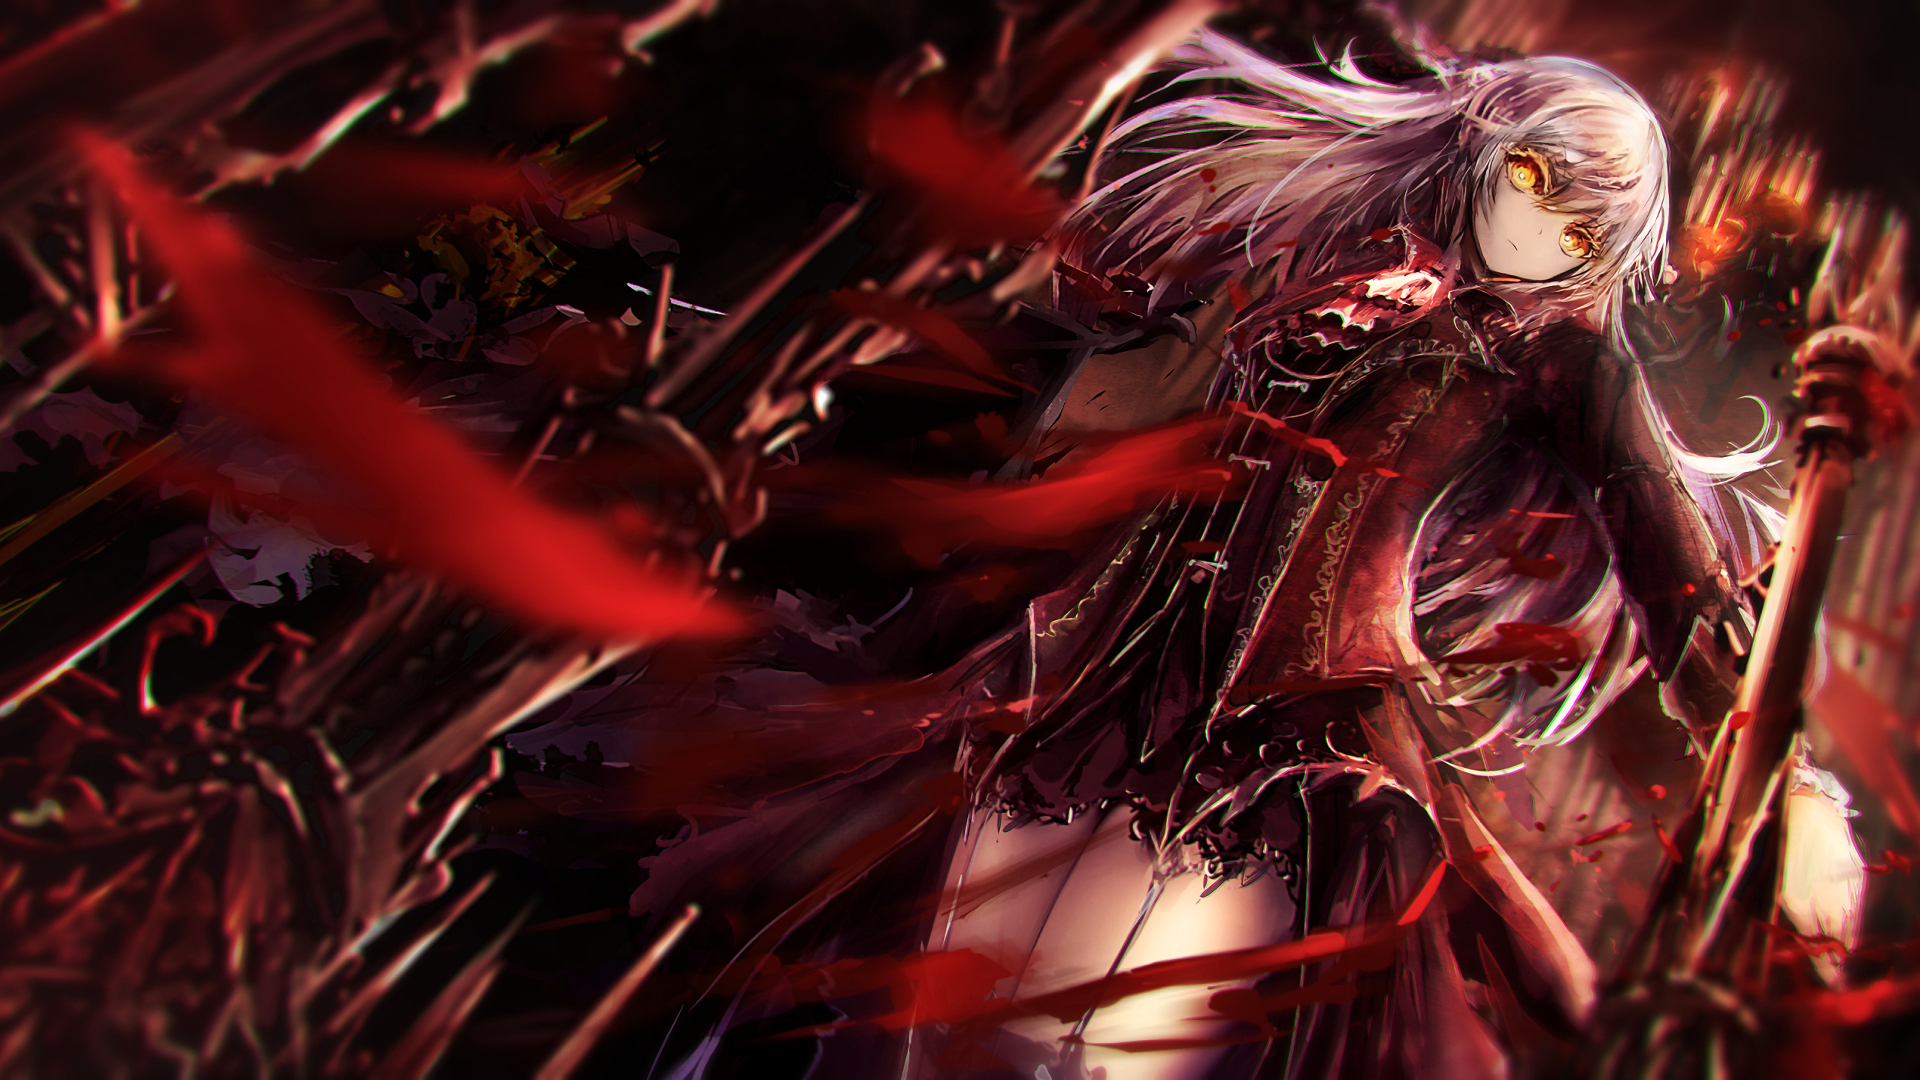 Download 1920x1080 Anime Girl, Worm View, Dress, Sword Wallpapers